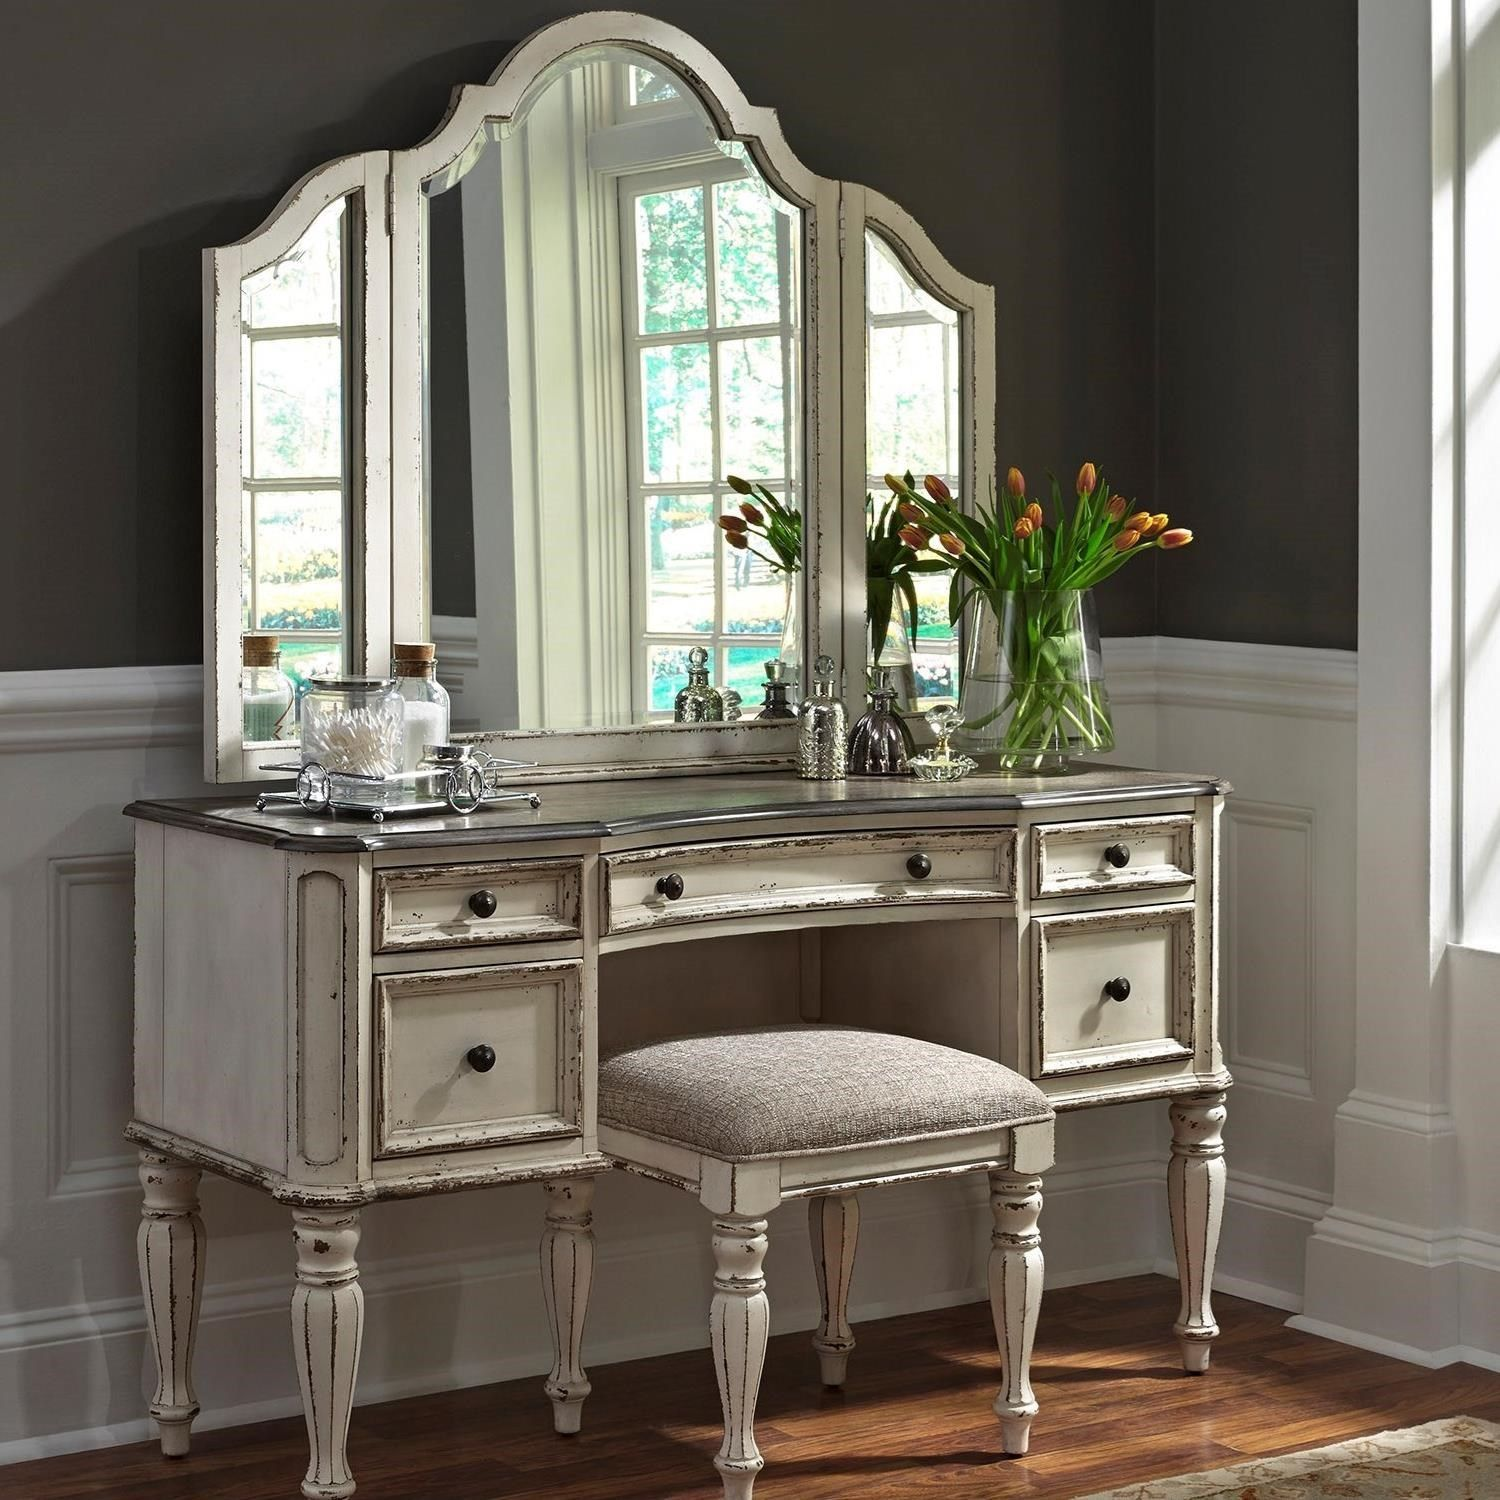 white fancy storage decorations jewelry and mirror lift design vanity cappuccino house modern set dresser hidden with